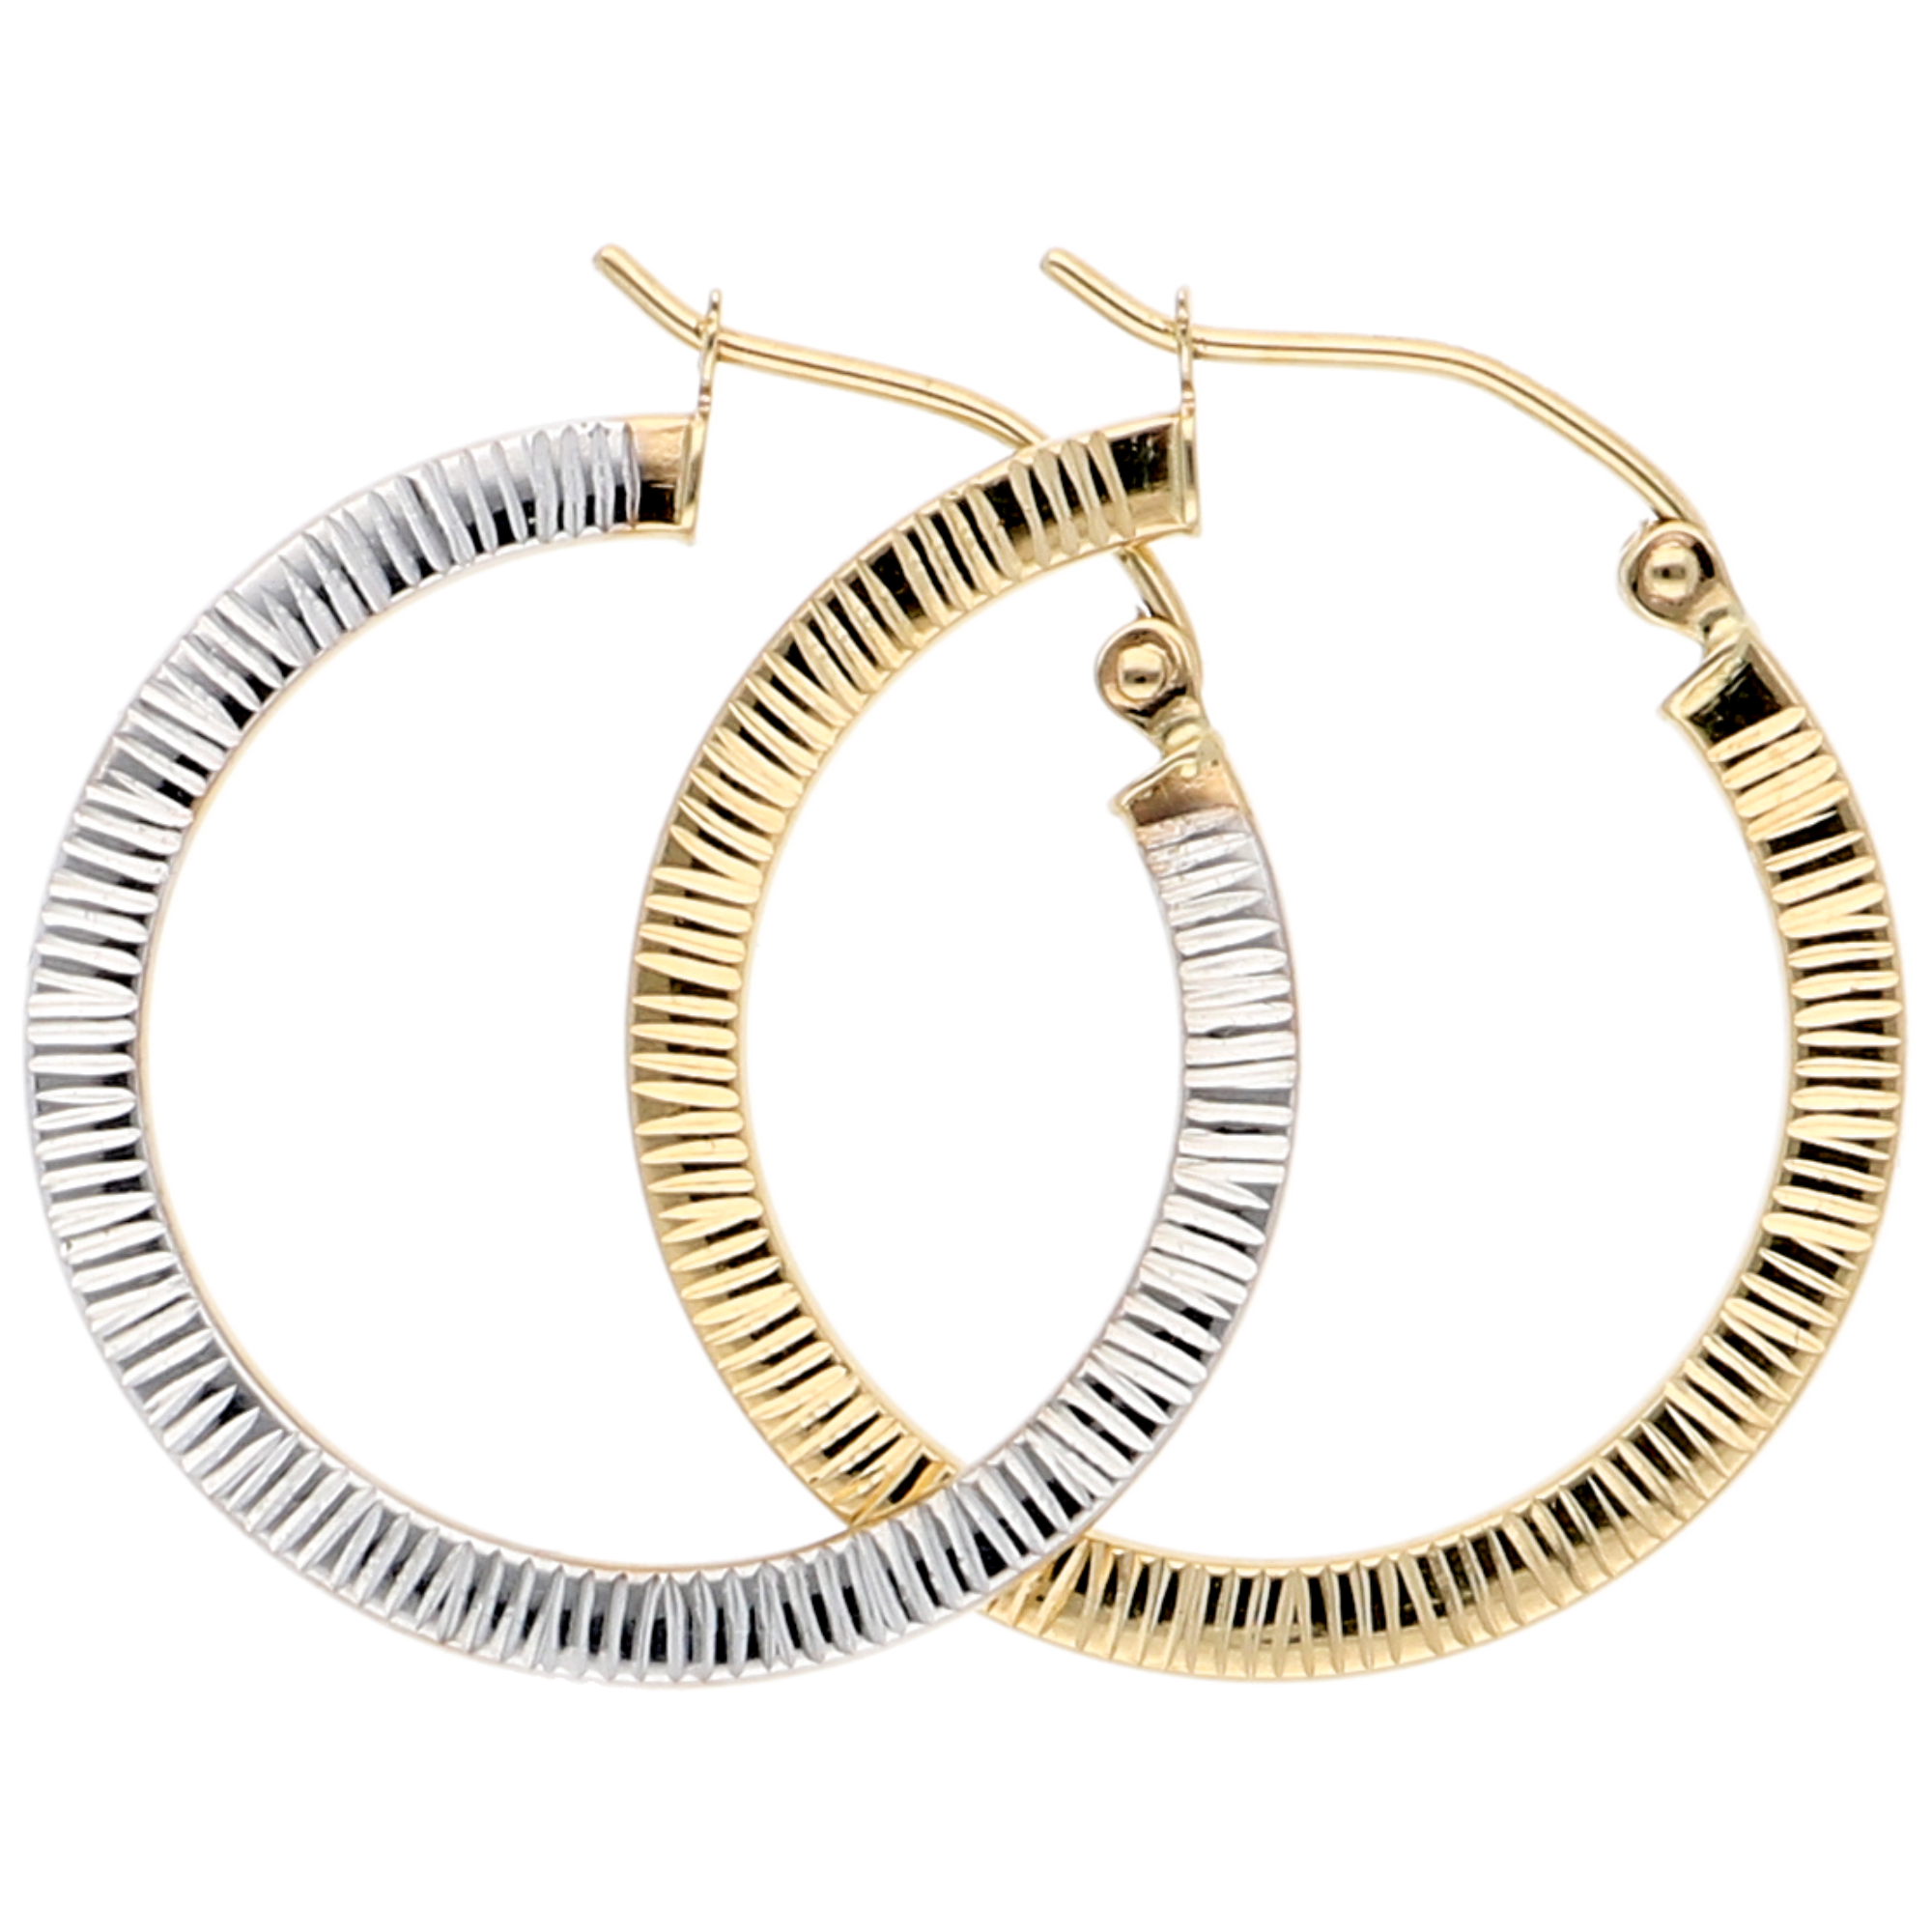 a swingin below to s fashion current time of you and good pairs comes around preview favorites totally snap shop where give goes back bershka here earrings what can our hoop are them right